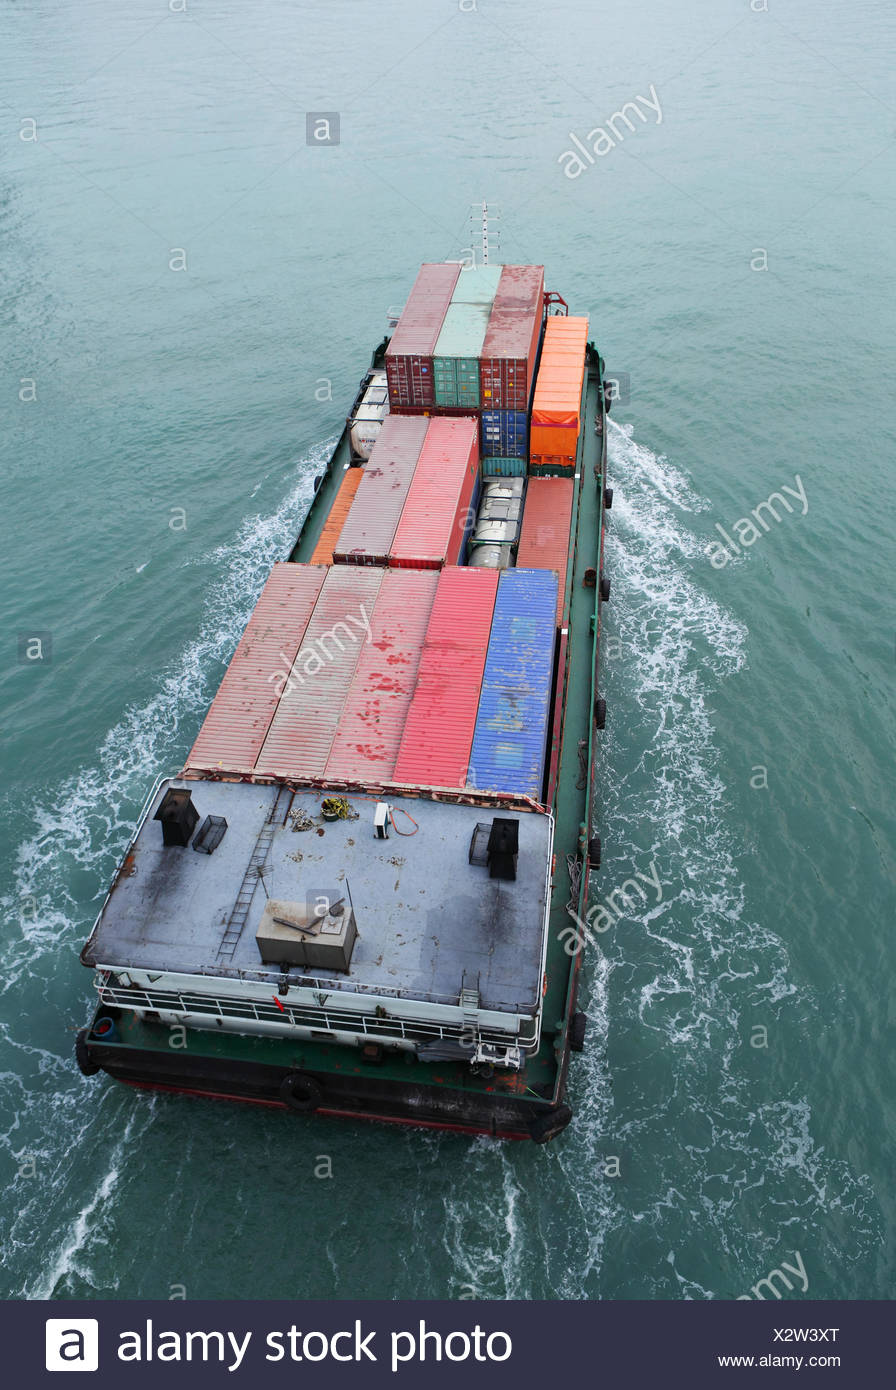 Cargo ship from top Stock Photo: 277147104 - Alamy